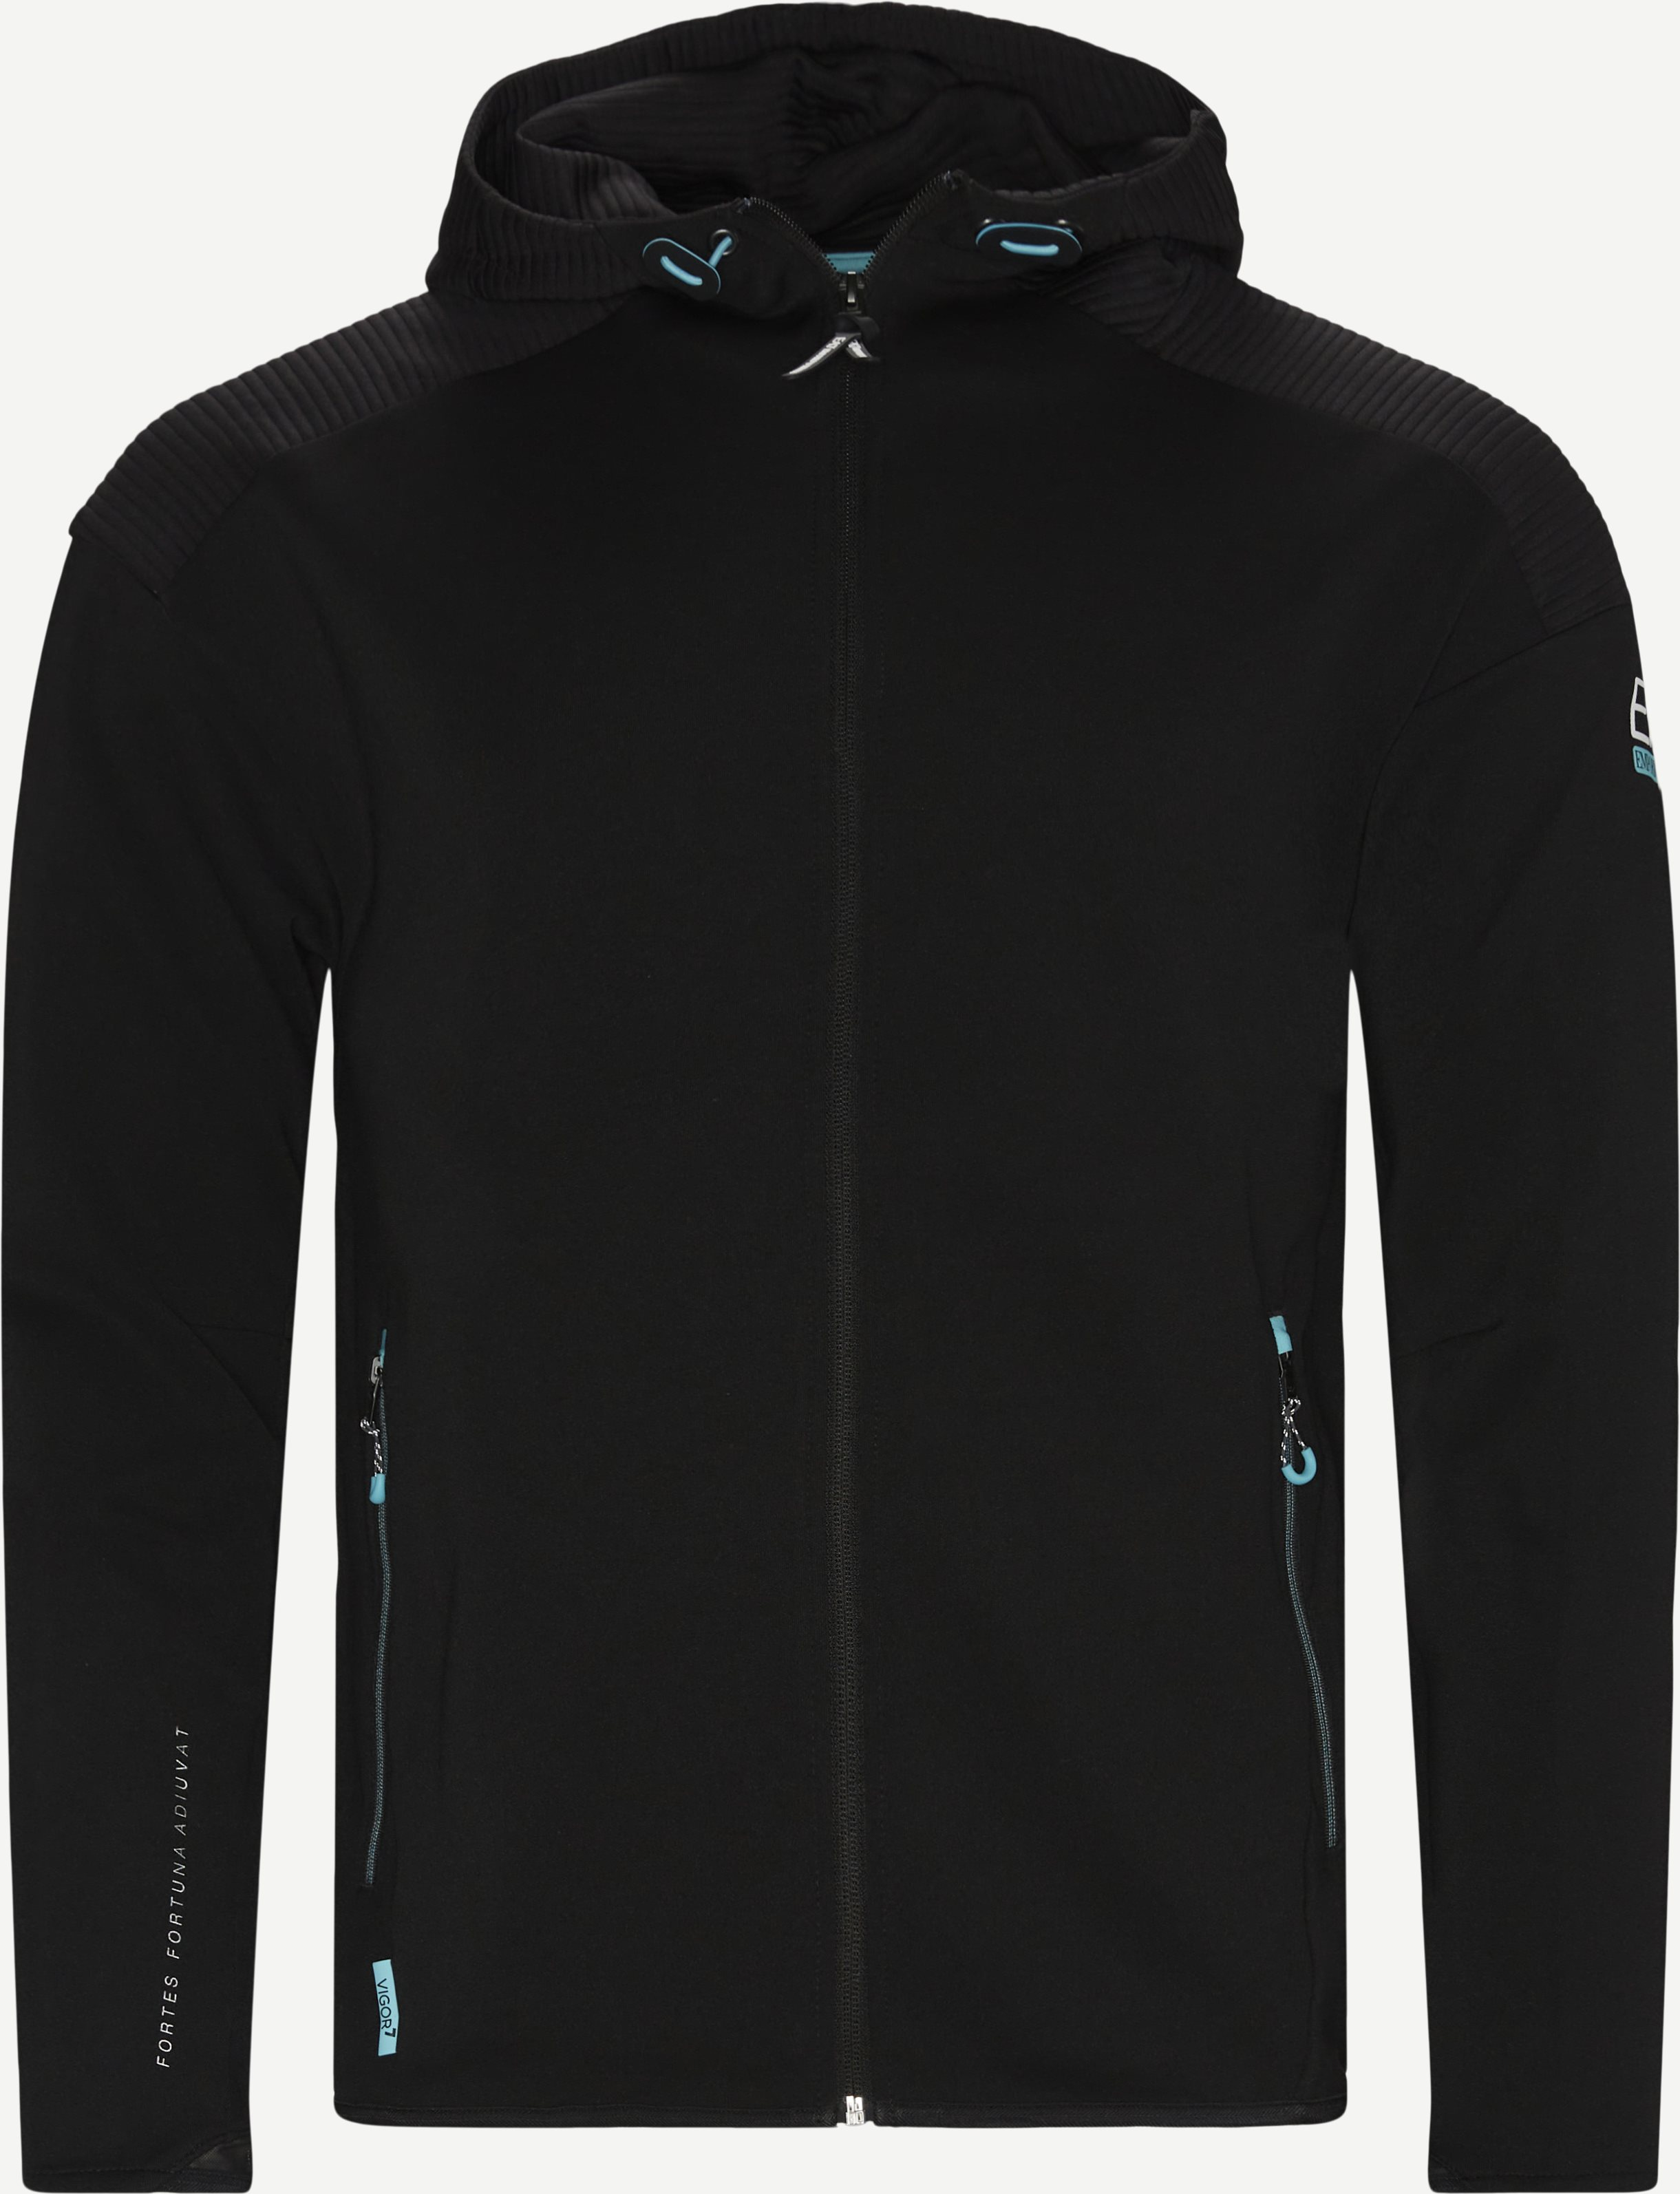 Pjahz Zip Hoodie - Sweatshirts - Regular - Black